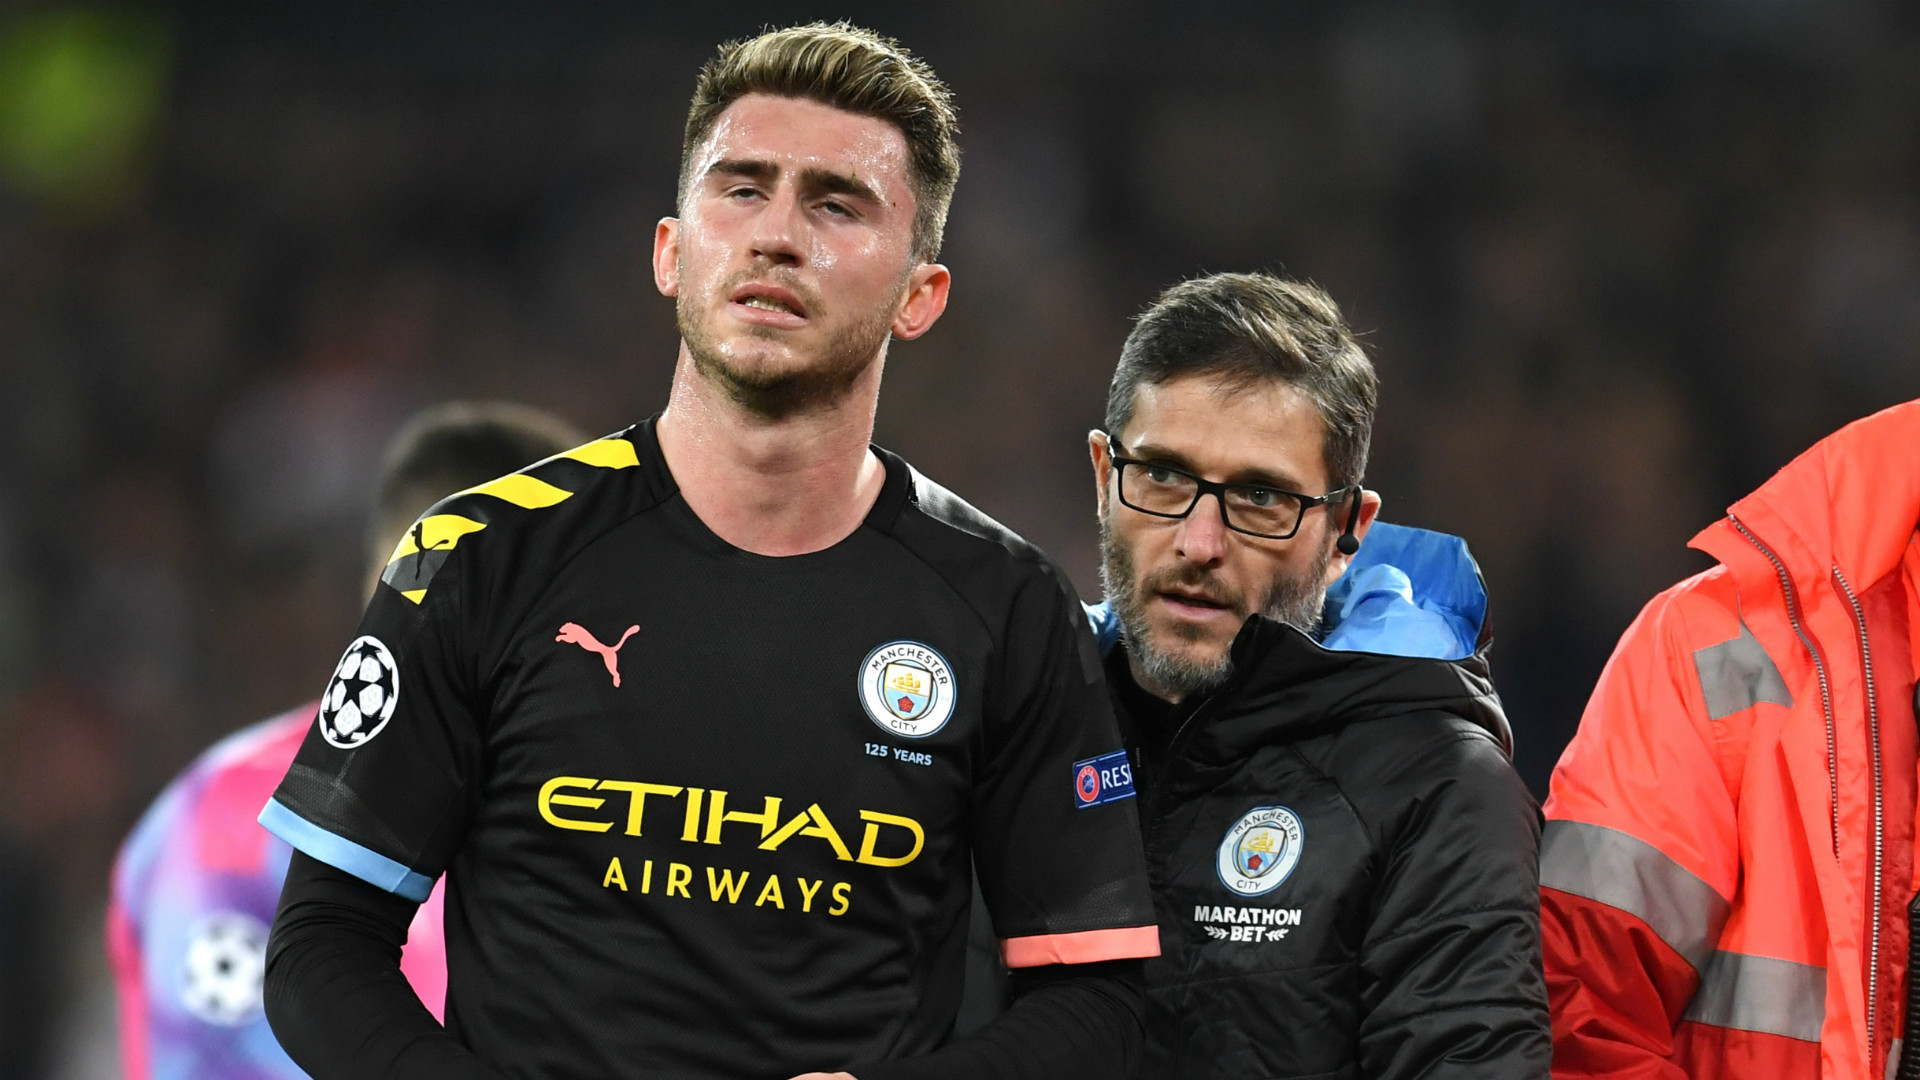 Hopefully Man City will be back in the Champions League soon – Laporte